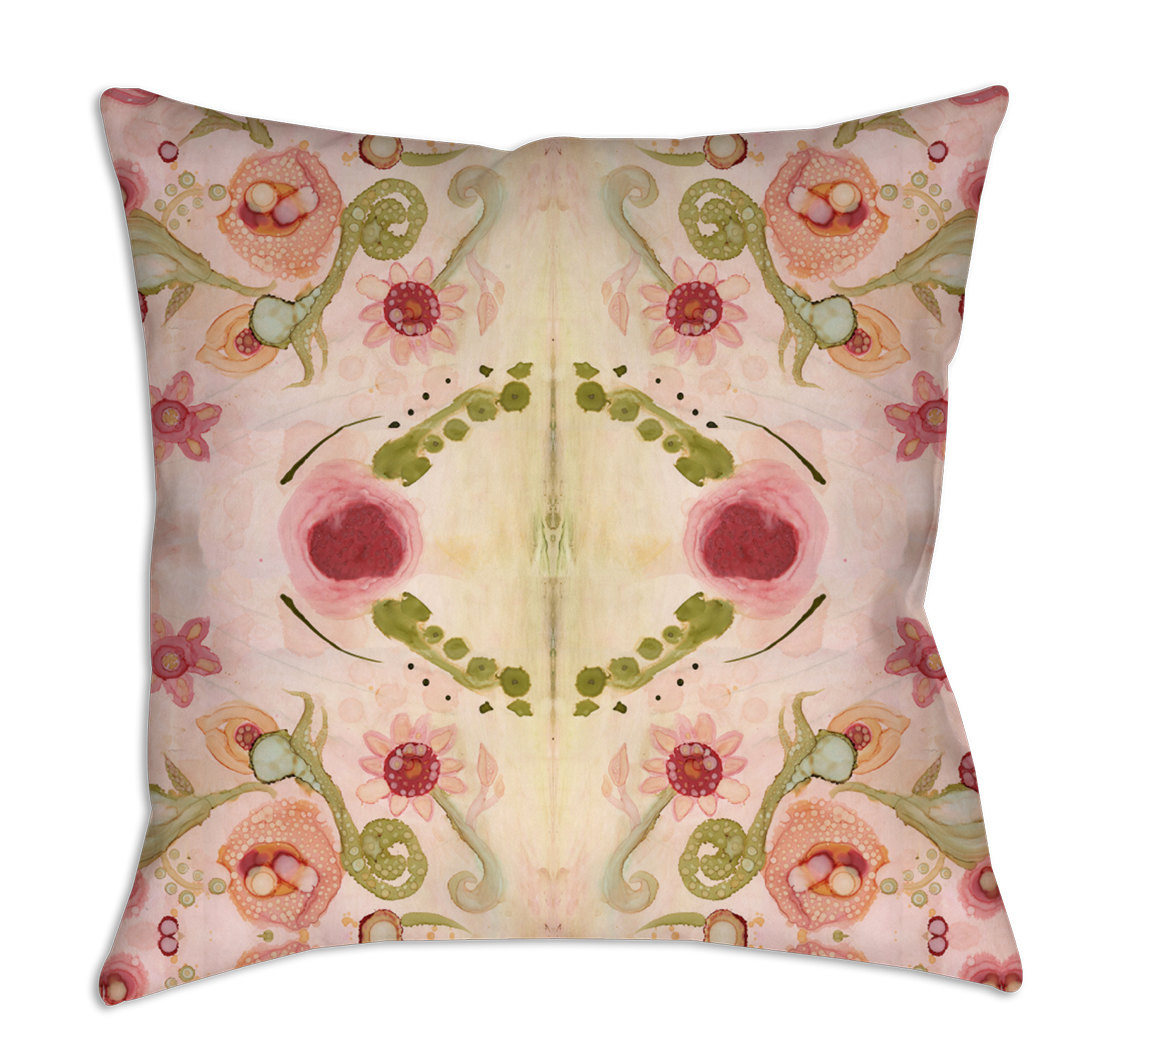 Best ideas about Shabby Chic Throw Pillows . Save or Pin Shabby Chic pillow floral throw pillow art boho pillow Now.